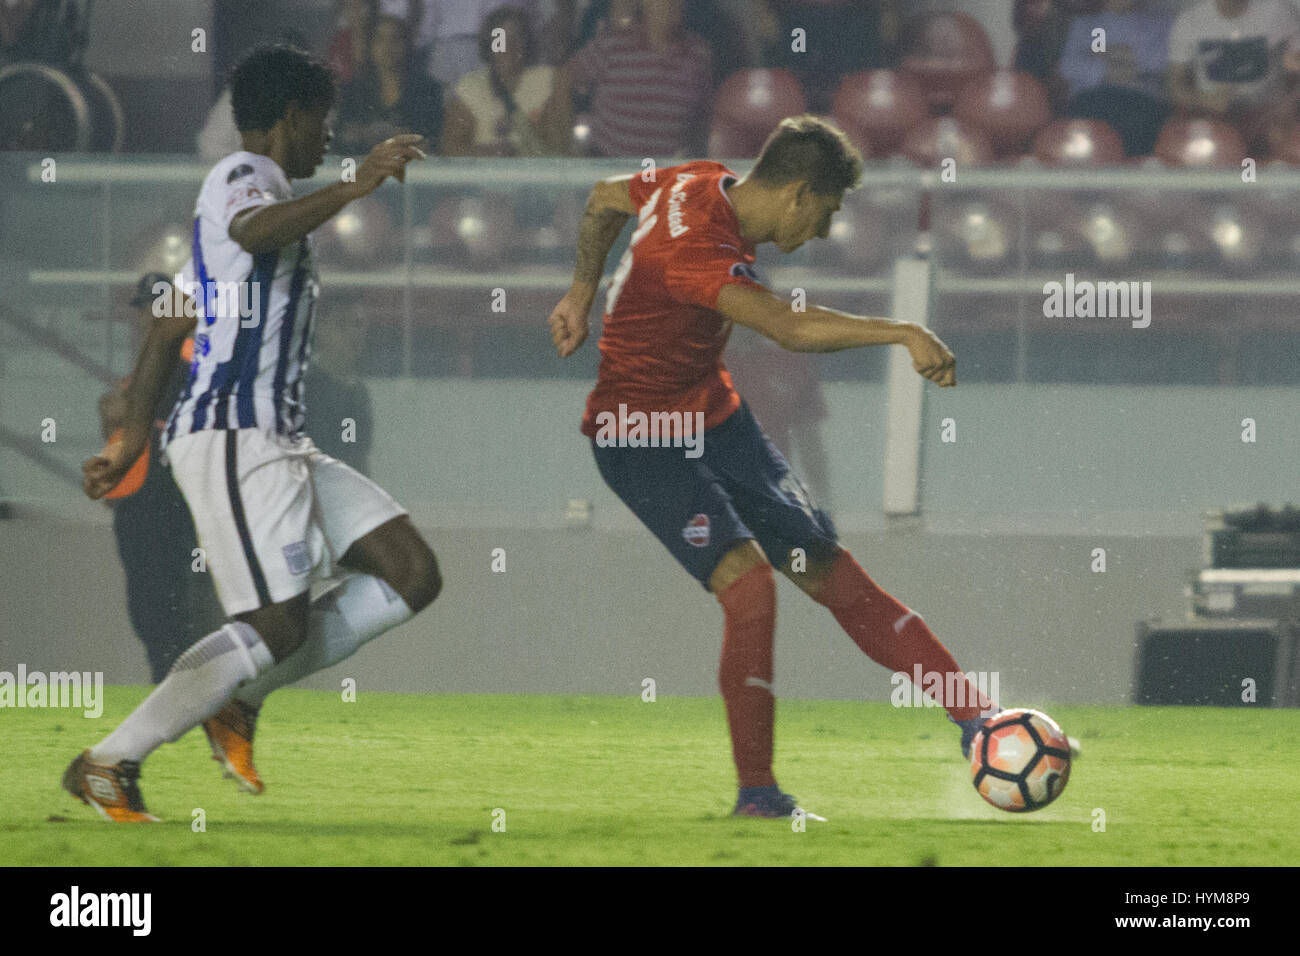 BUENOS AIRES, 04.04.2017:  Emliano Rigoni, forward of Independiente during match between Independiente (ARG) and - Stock Image